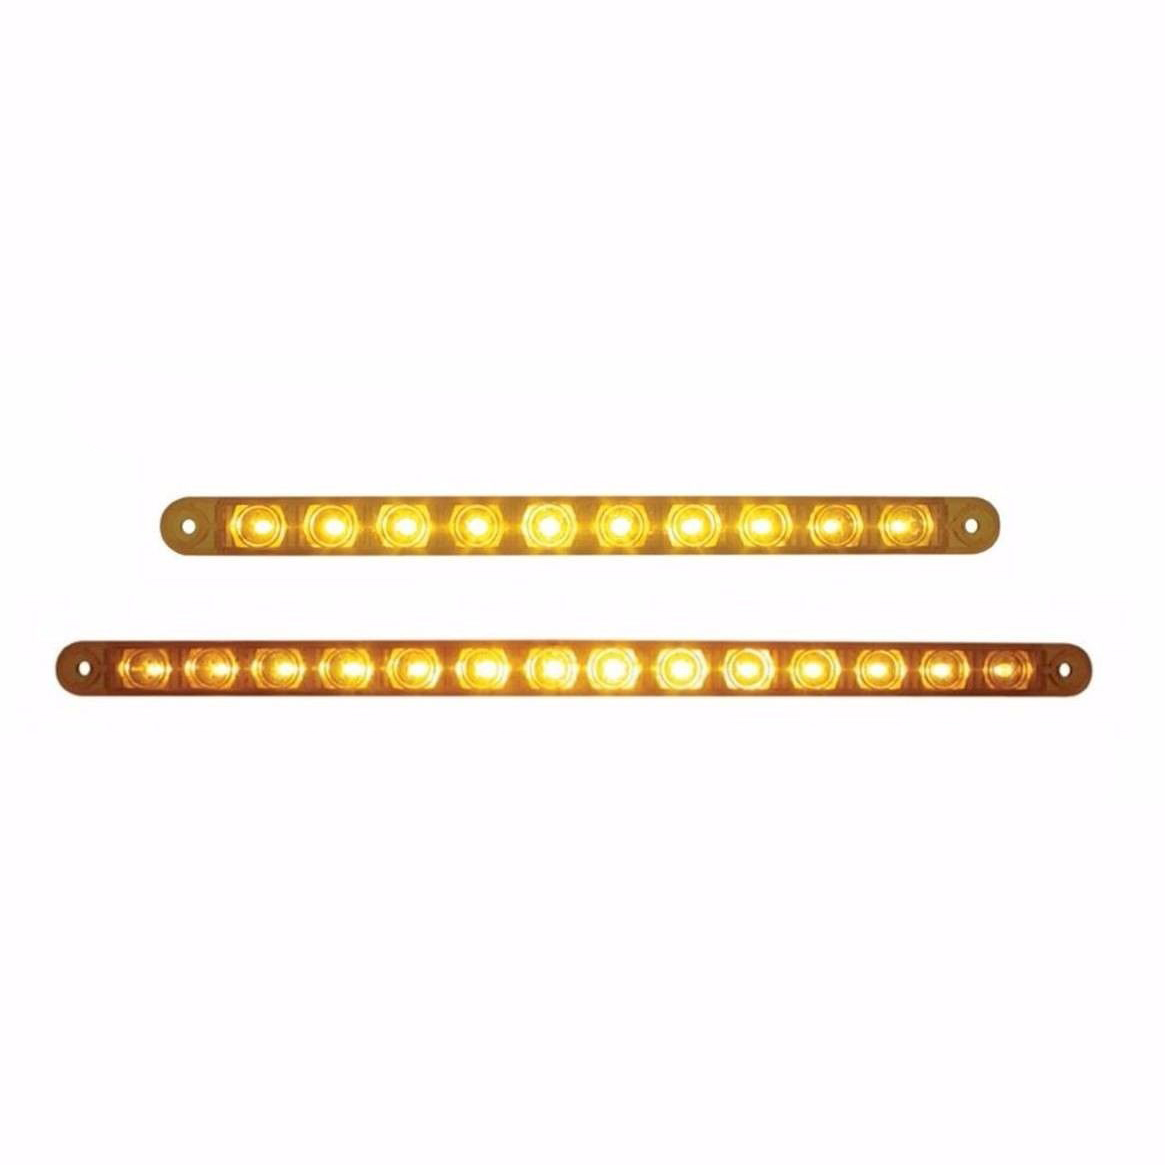 10 LED and 14 LED Turn Signal Light Bars (Amber/Amber) SET (#38942  #38946)